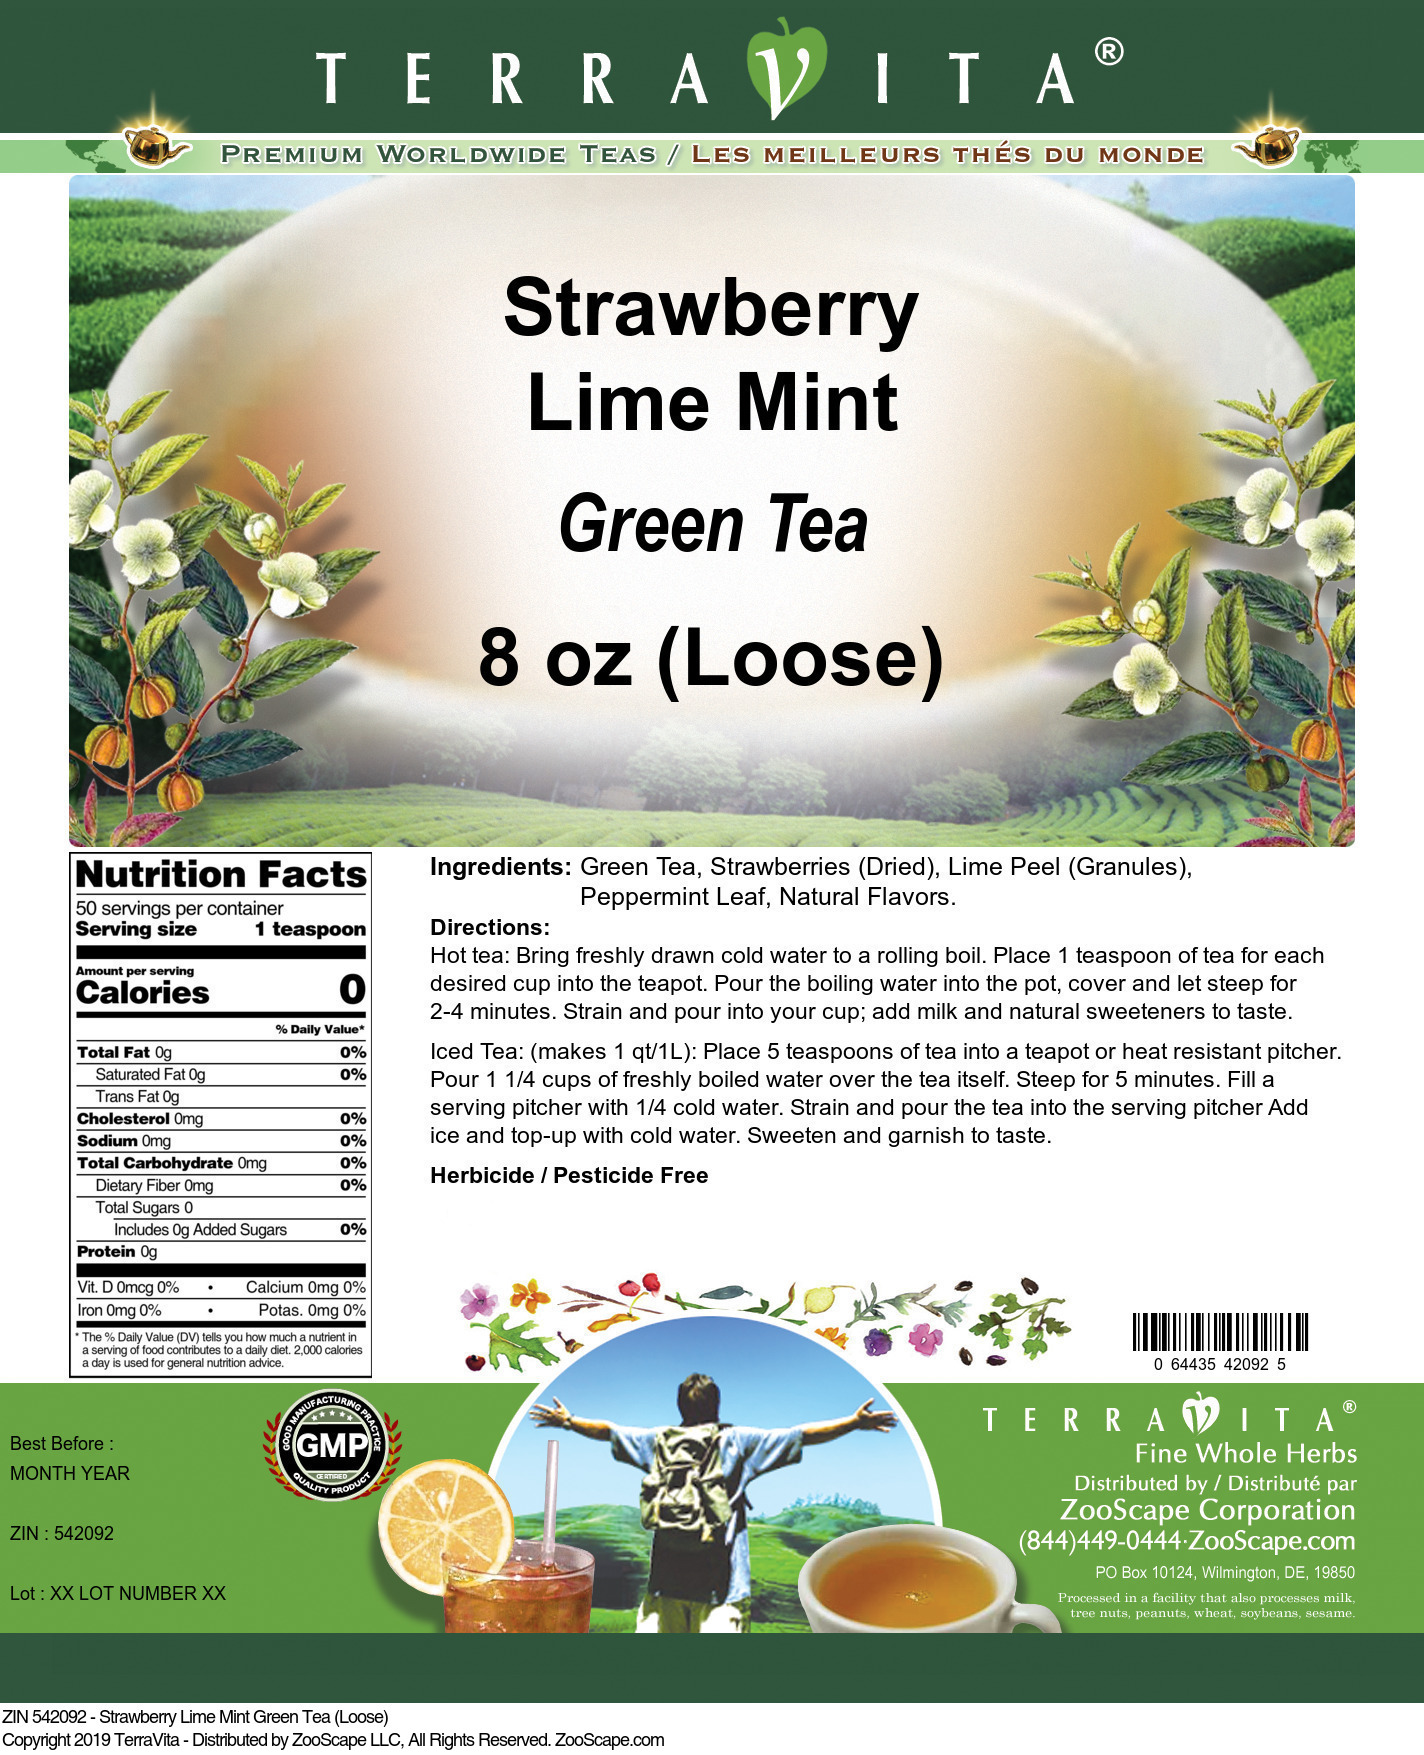 Strawberry Lime Mint Green Tea (Loose)